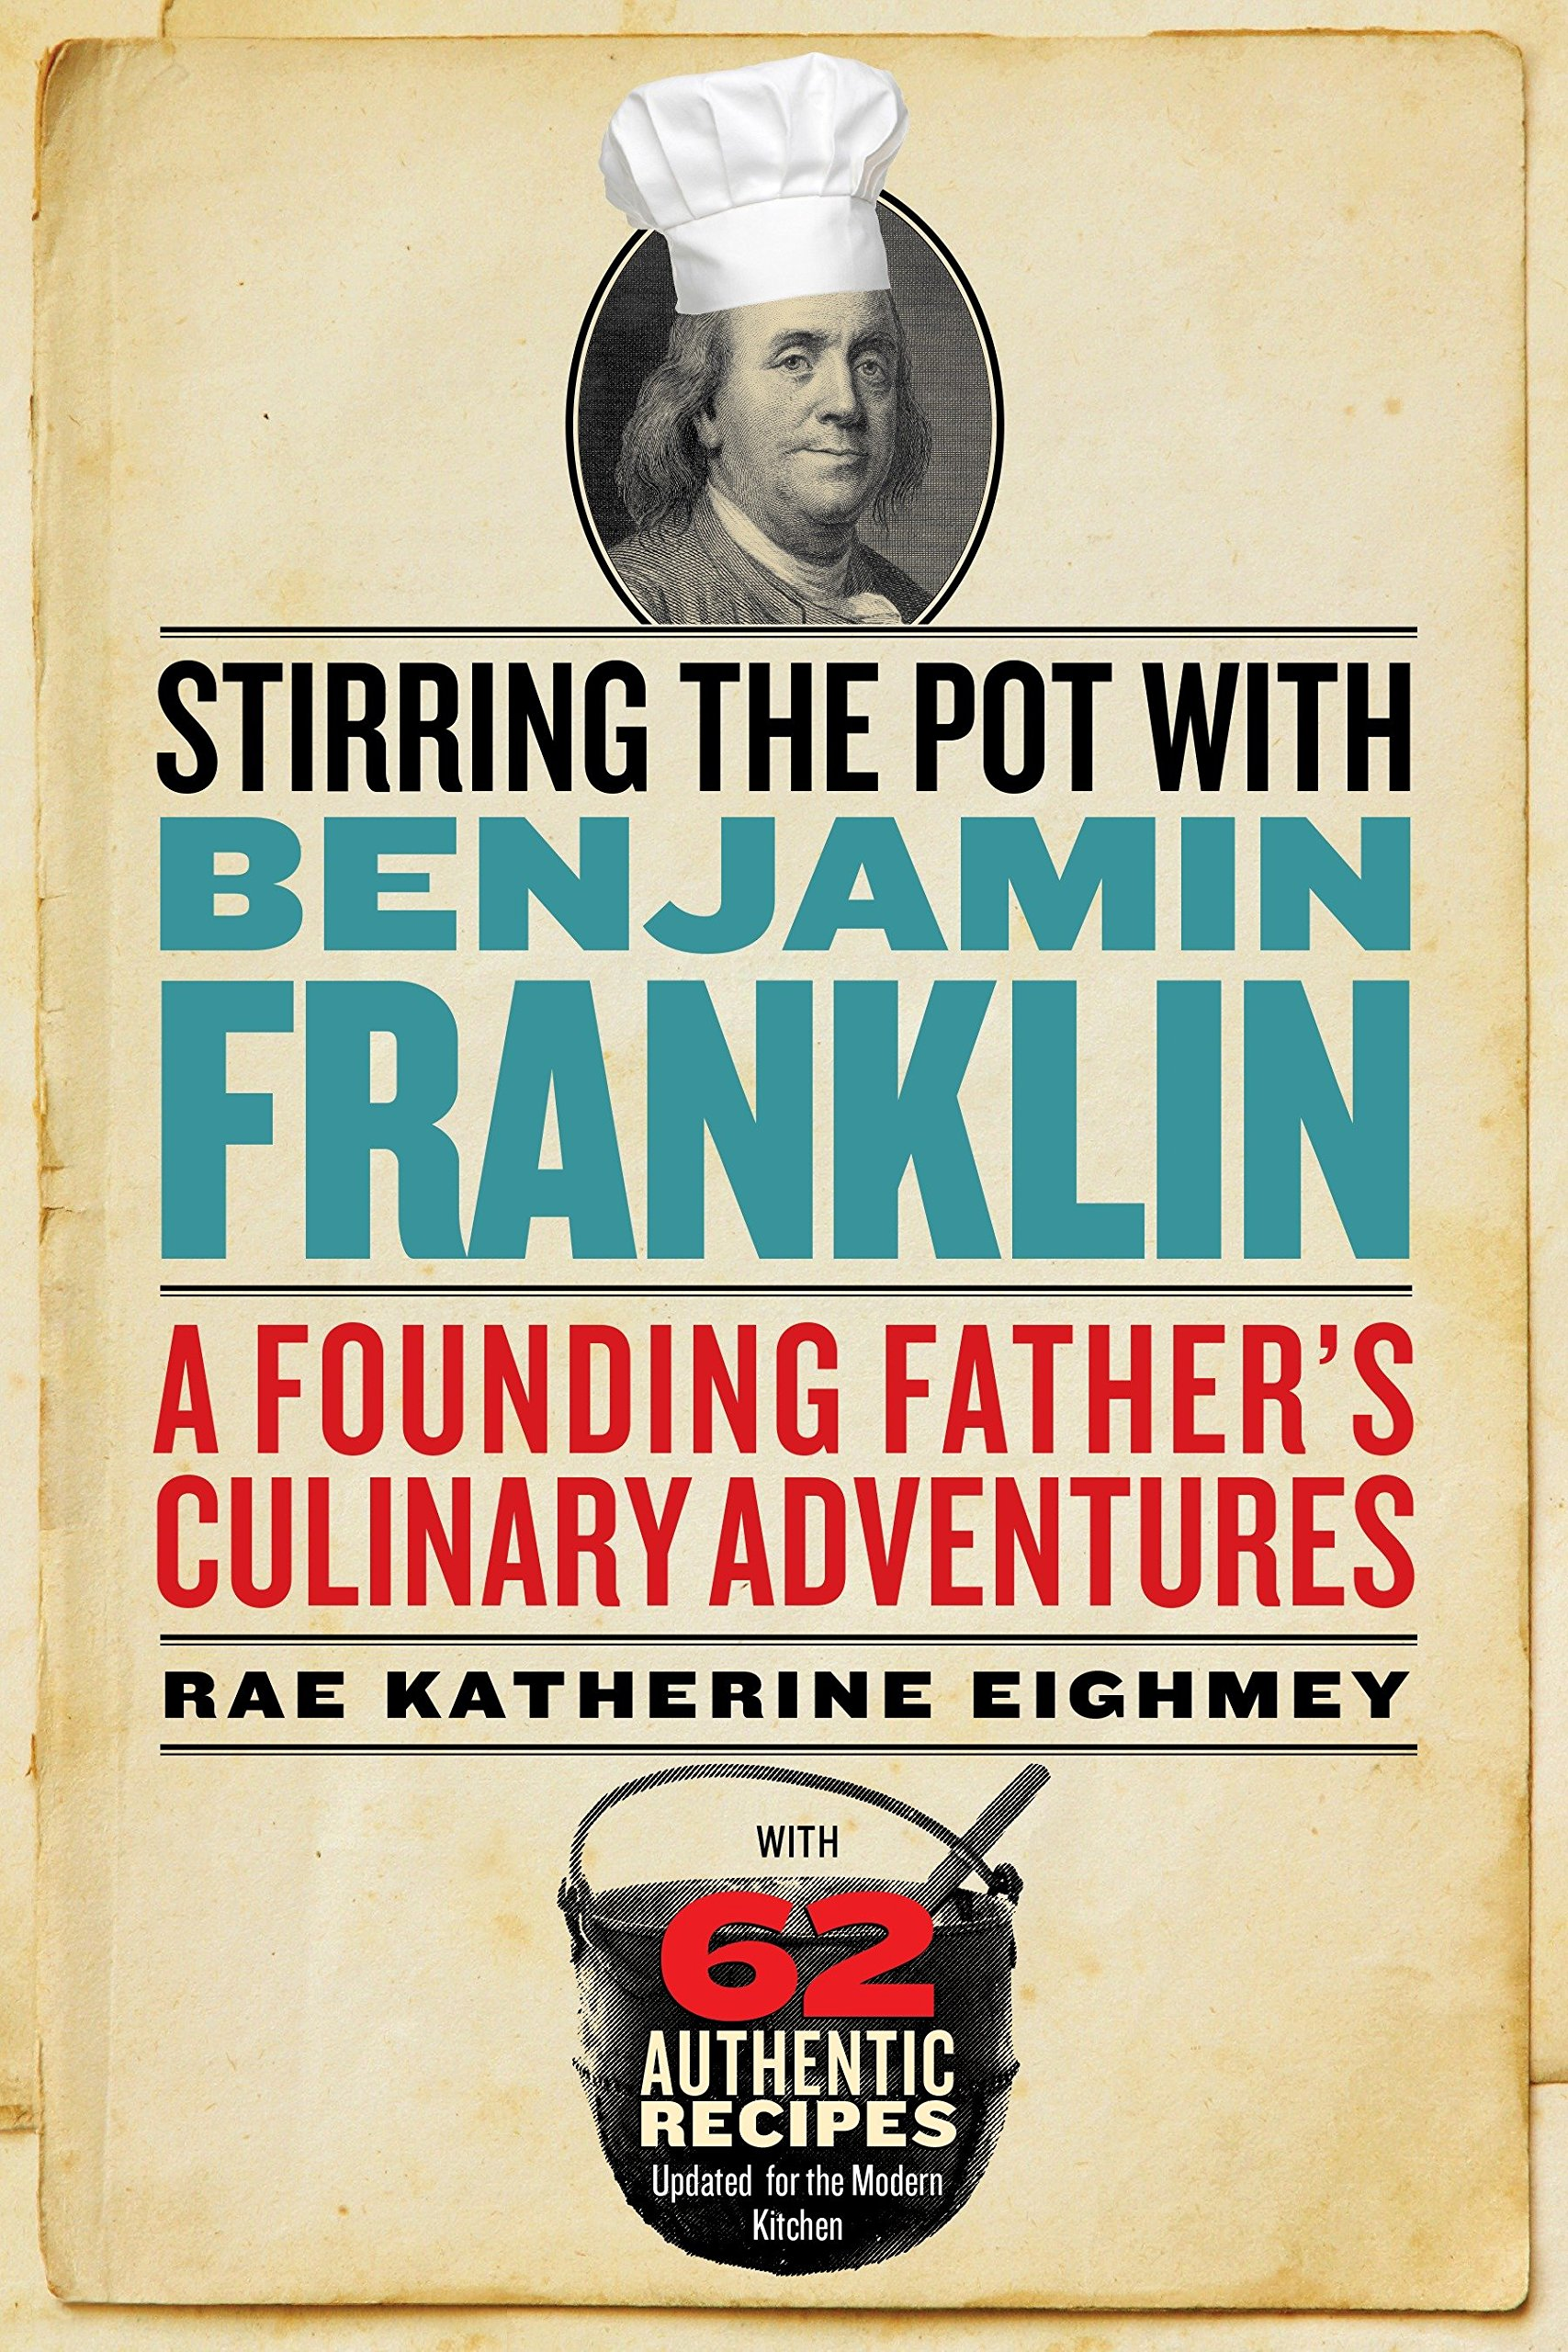 Amazon.com: Stirring the Pot with Benjamin Franklin: A Founding ...